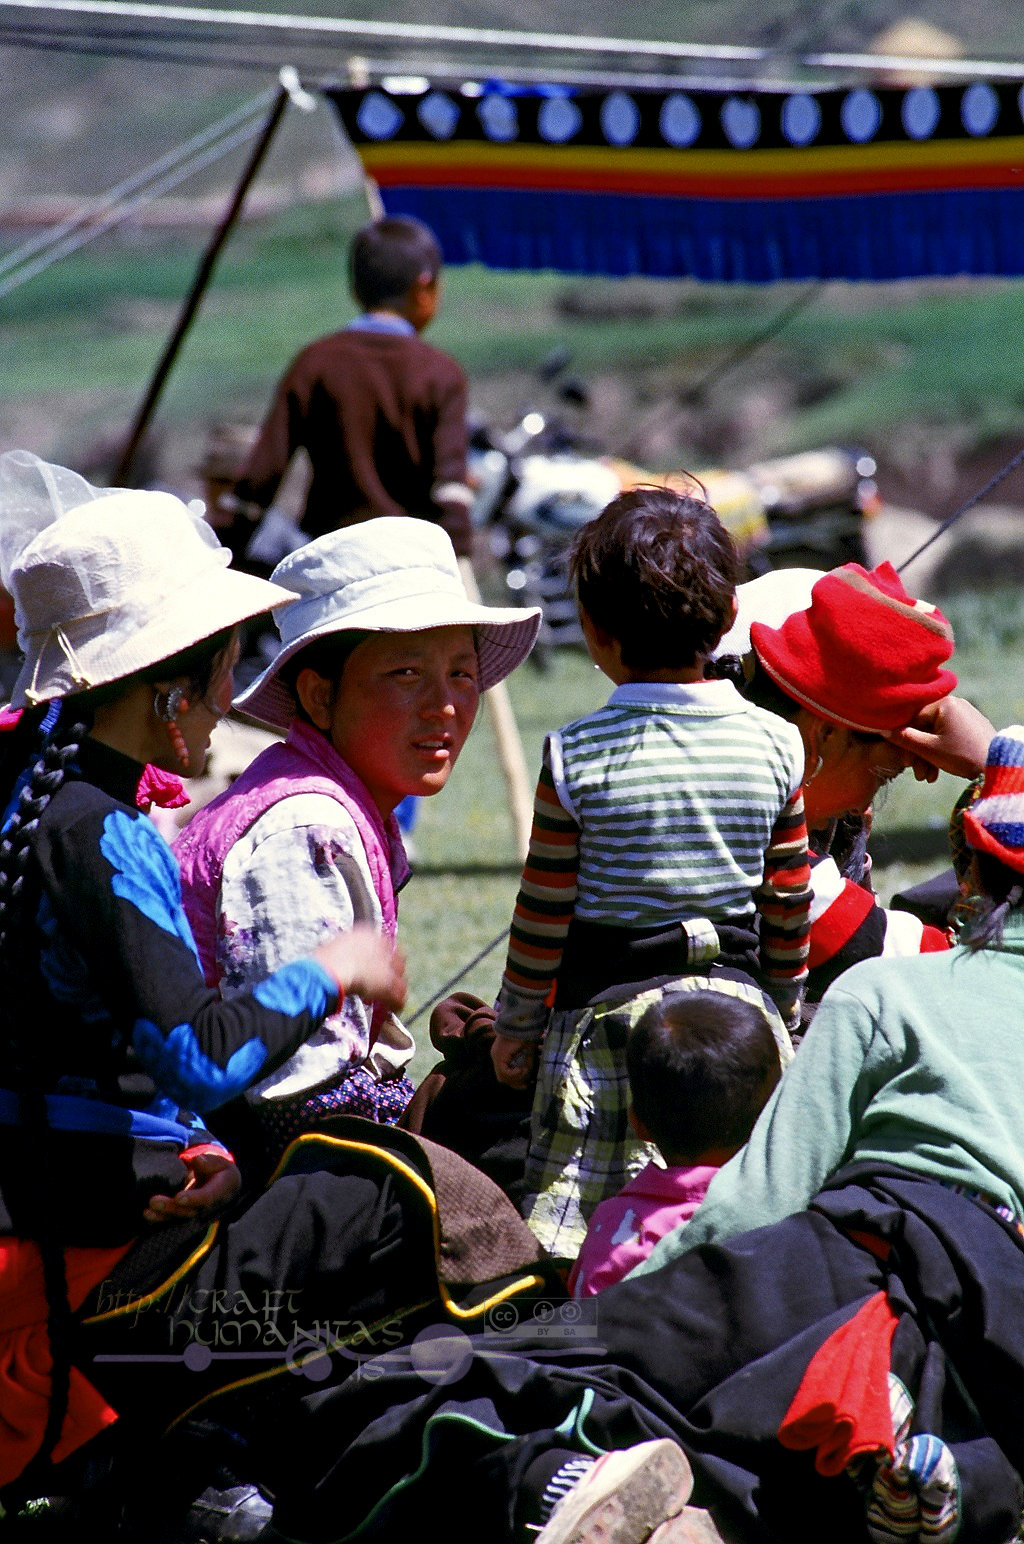 For 2-3 consecutive summers, I co- sponsored a grassroots medical campaign in the Tibetan areas of Gansu province.